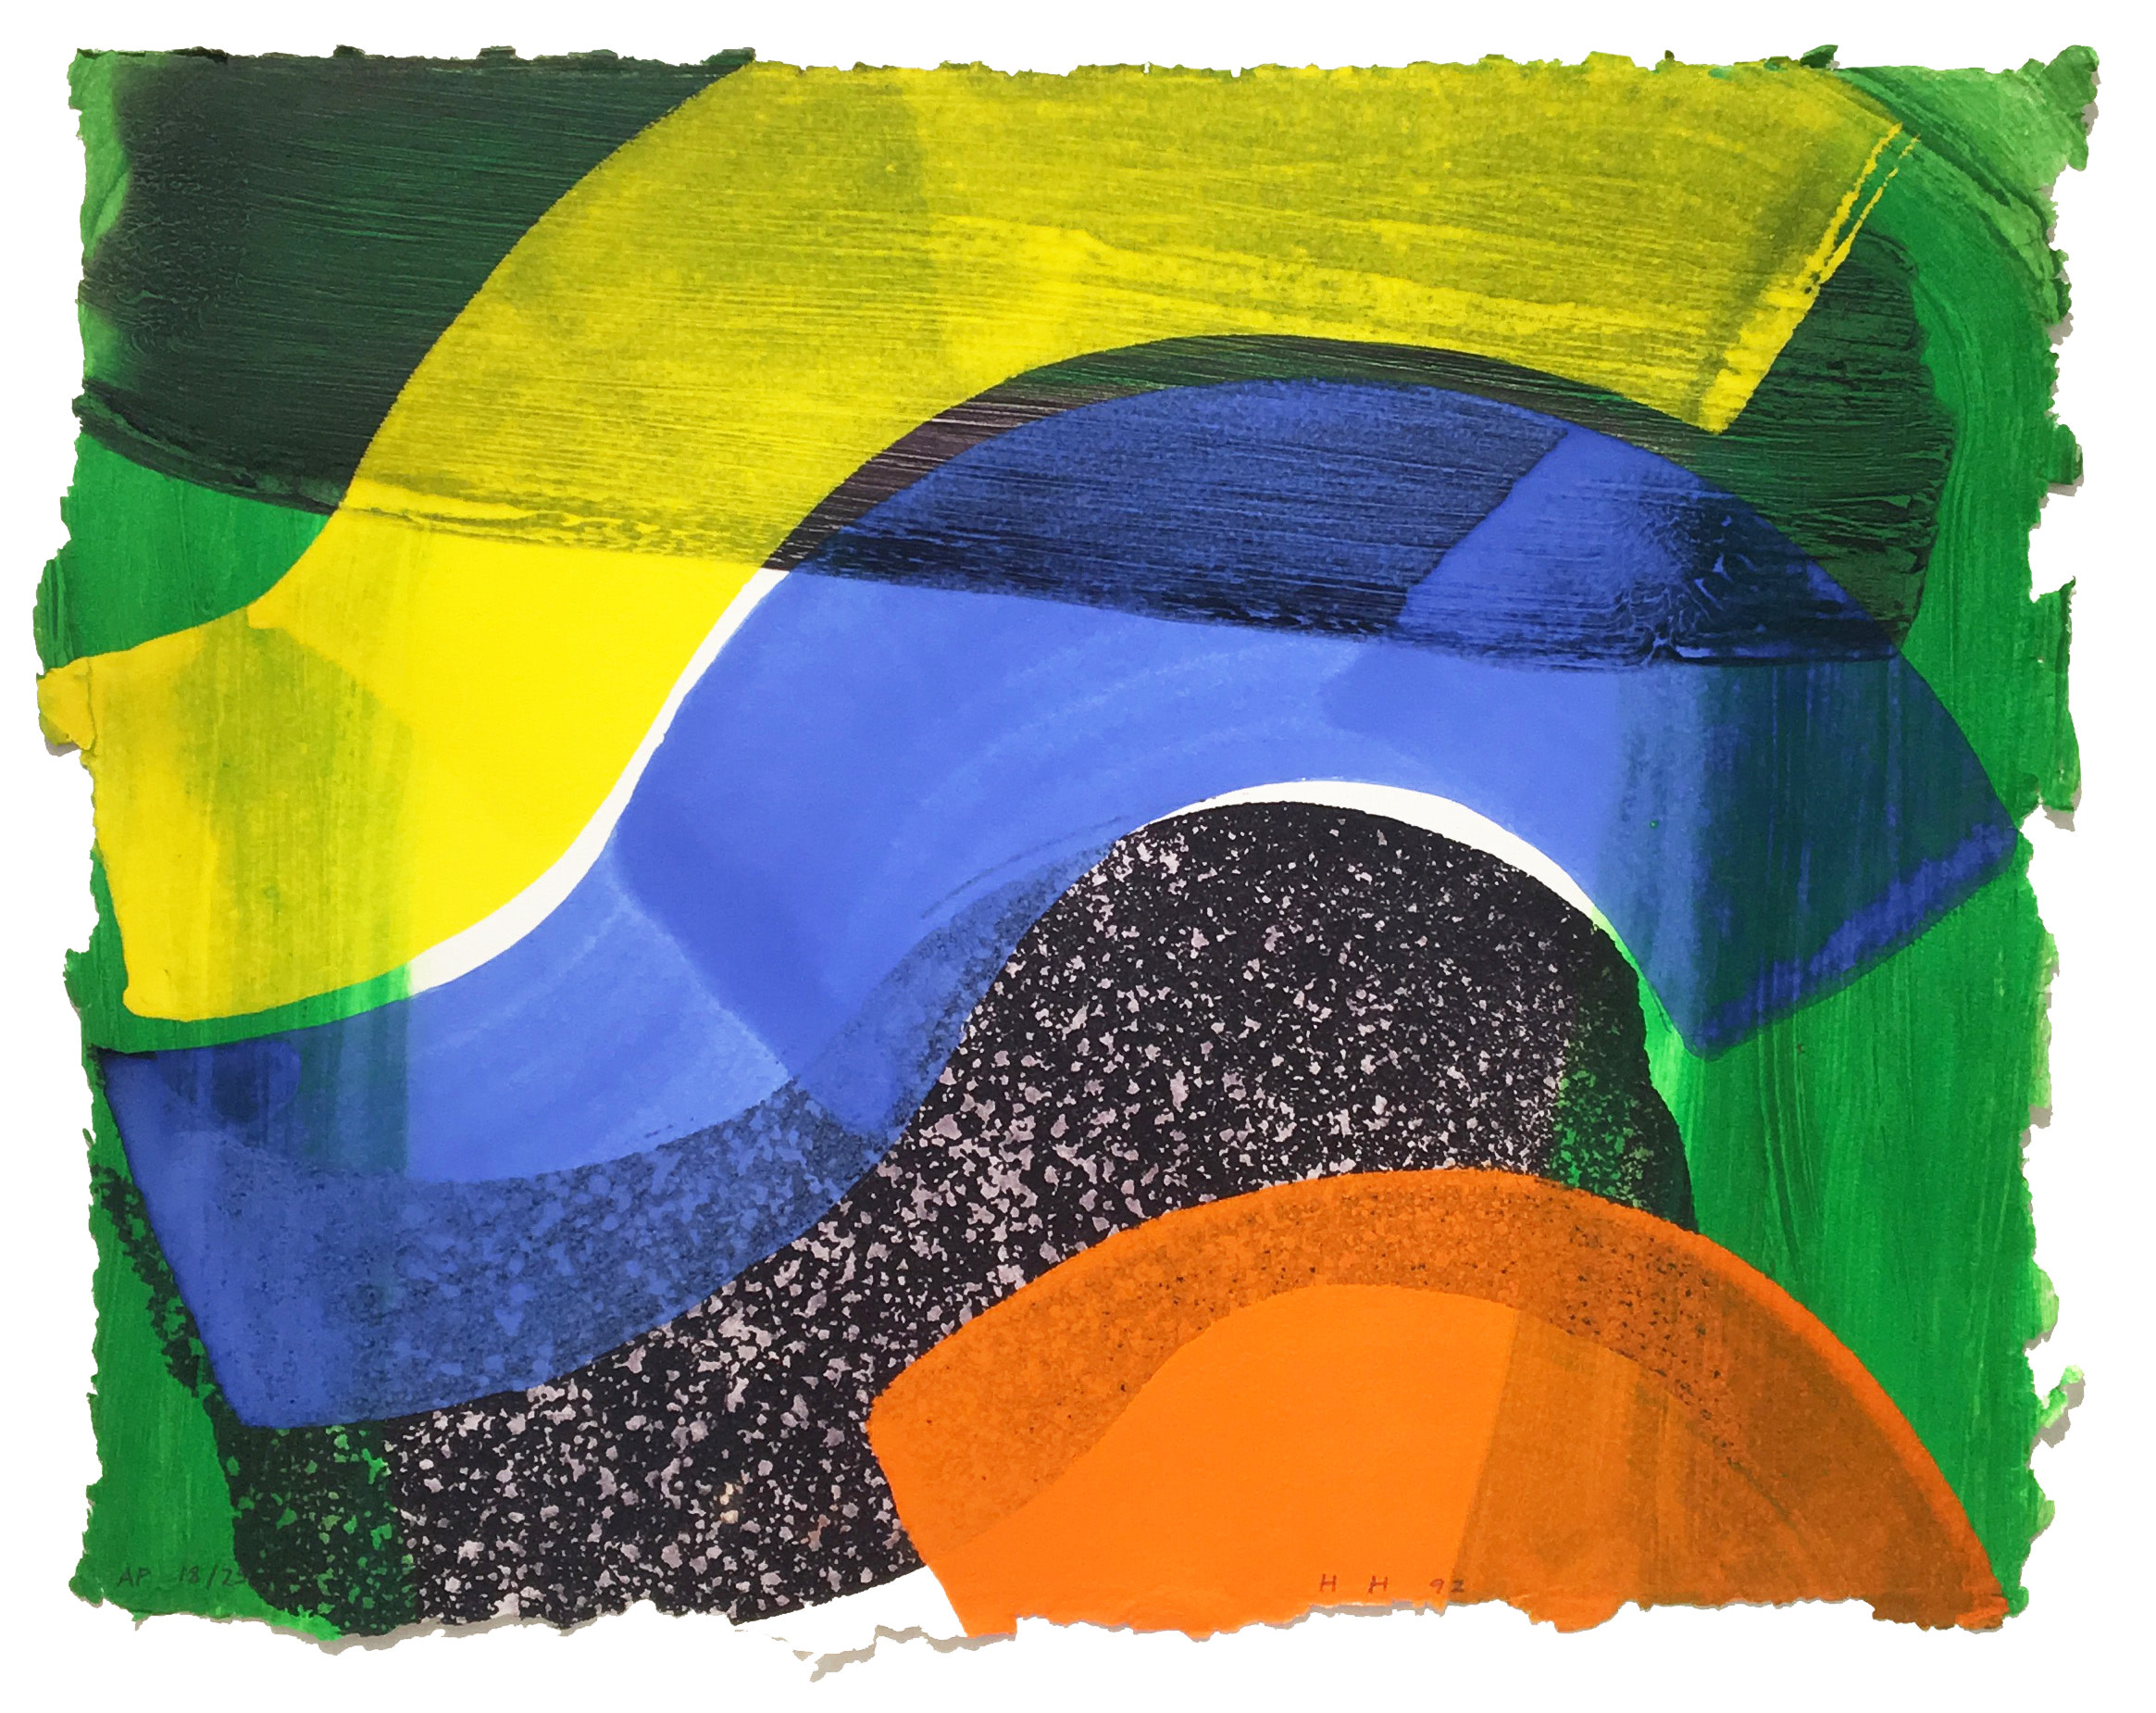 "<span class=""link fancybox-details-link""><a href=""/artists/76-howard-hodgkin/works/1045/"">View Detail Page</a></span><div class=""artist""><strong>Howard Hodgkin</strong></div> 1932 - 2017 <div class=""title""><em>Put Out More Flags</em>, 1992</div> <div class=""signed_and_dated"">signed with initials and dated in pencil</div> <div class=""medium"">Lift-ground etching and aquatint - edition 72/75</div> <div class=""dimensions"">42 x 52.4cm</div><div class=""copyright_line"">Copyright The Artist</div>"